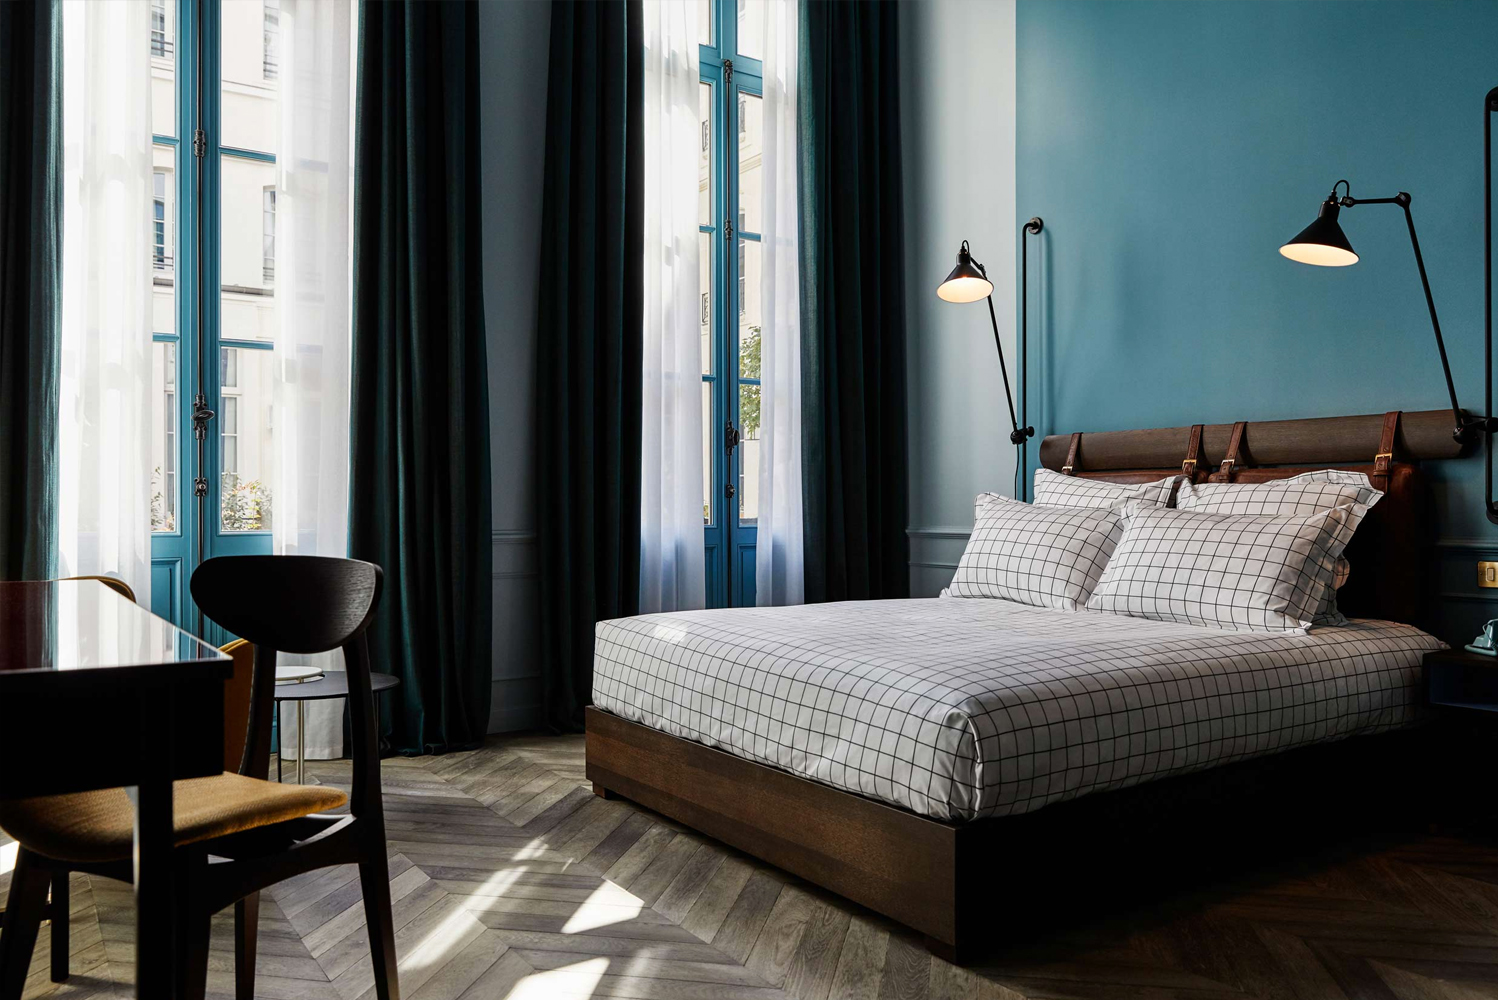 The Hoxton, Paris is the brand's largest property with 171 guestrooms. It opens in an 18th-century hotel particulier.